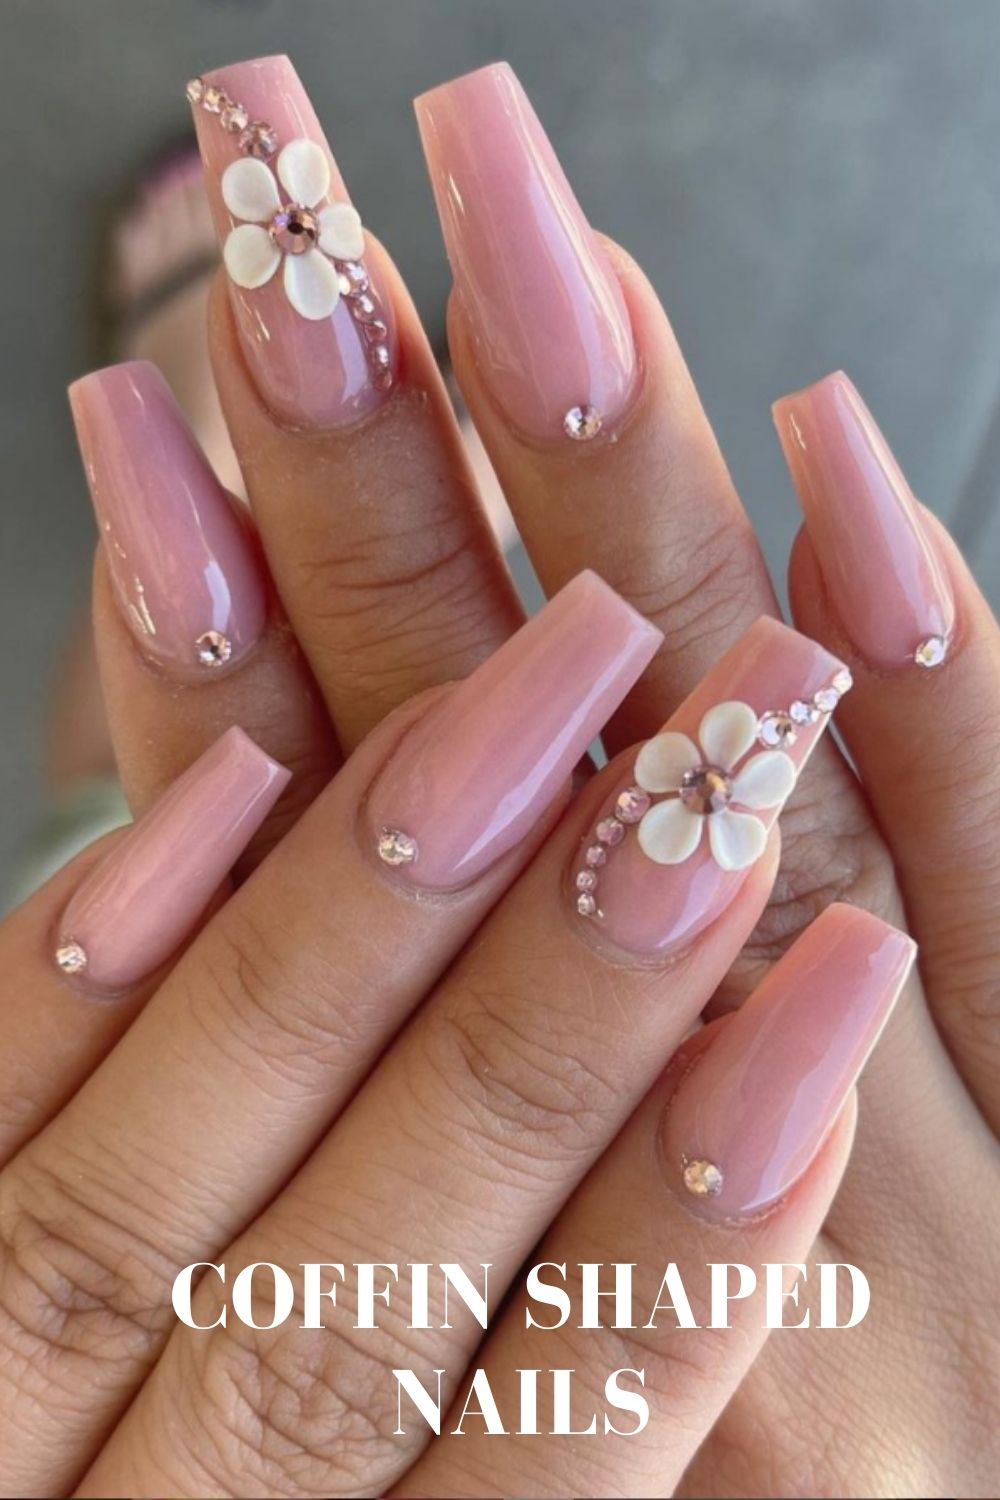 Gel coffin nail art with 3D flower